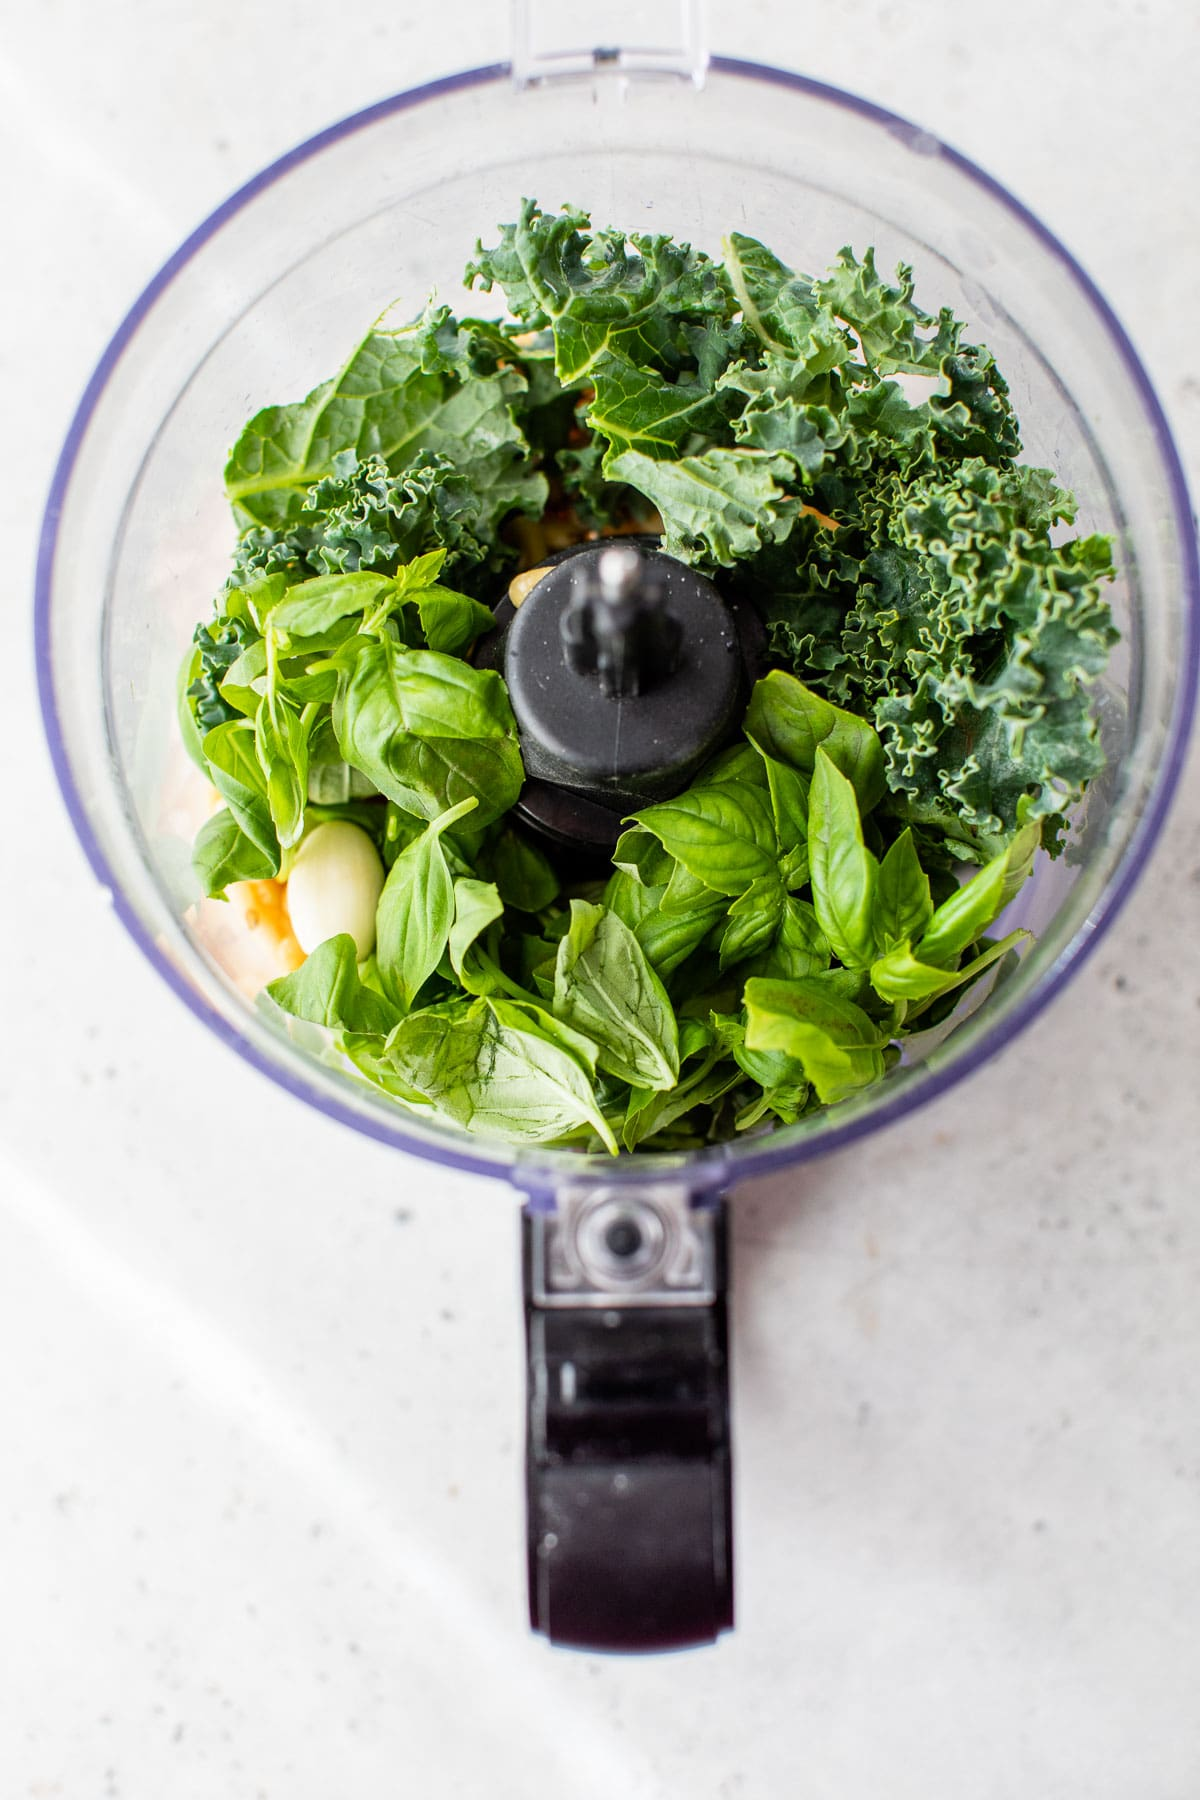 kale, basil and garlic in a food processor